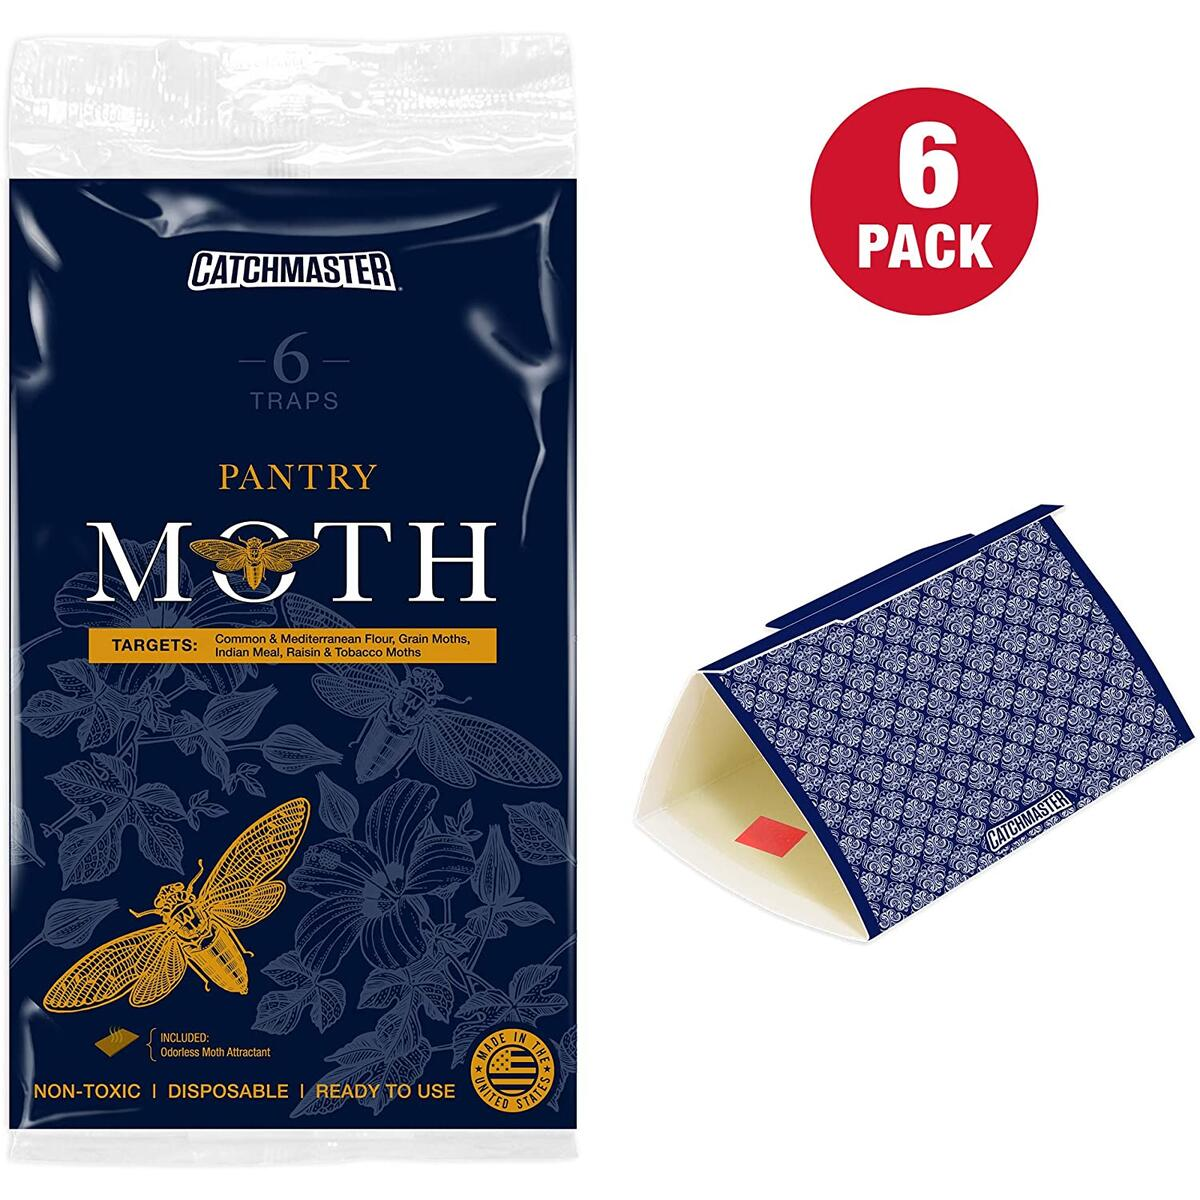 Catchmaster Premium Decorative Pantry Moth Trap - Safe, Non Toxic - Sticky Glue Trap with Premium Pheromone Lure Attractant - Pack of 6 Traps